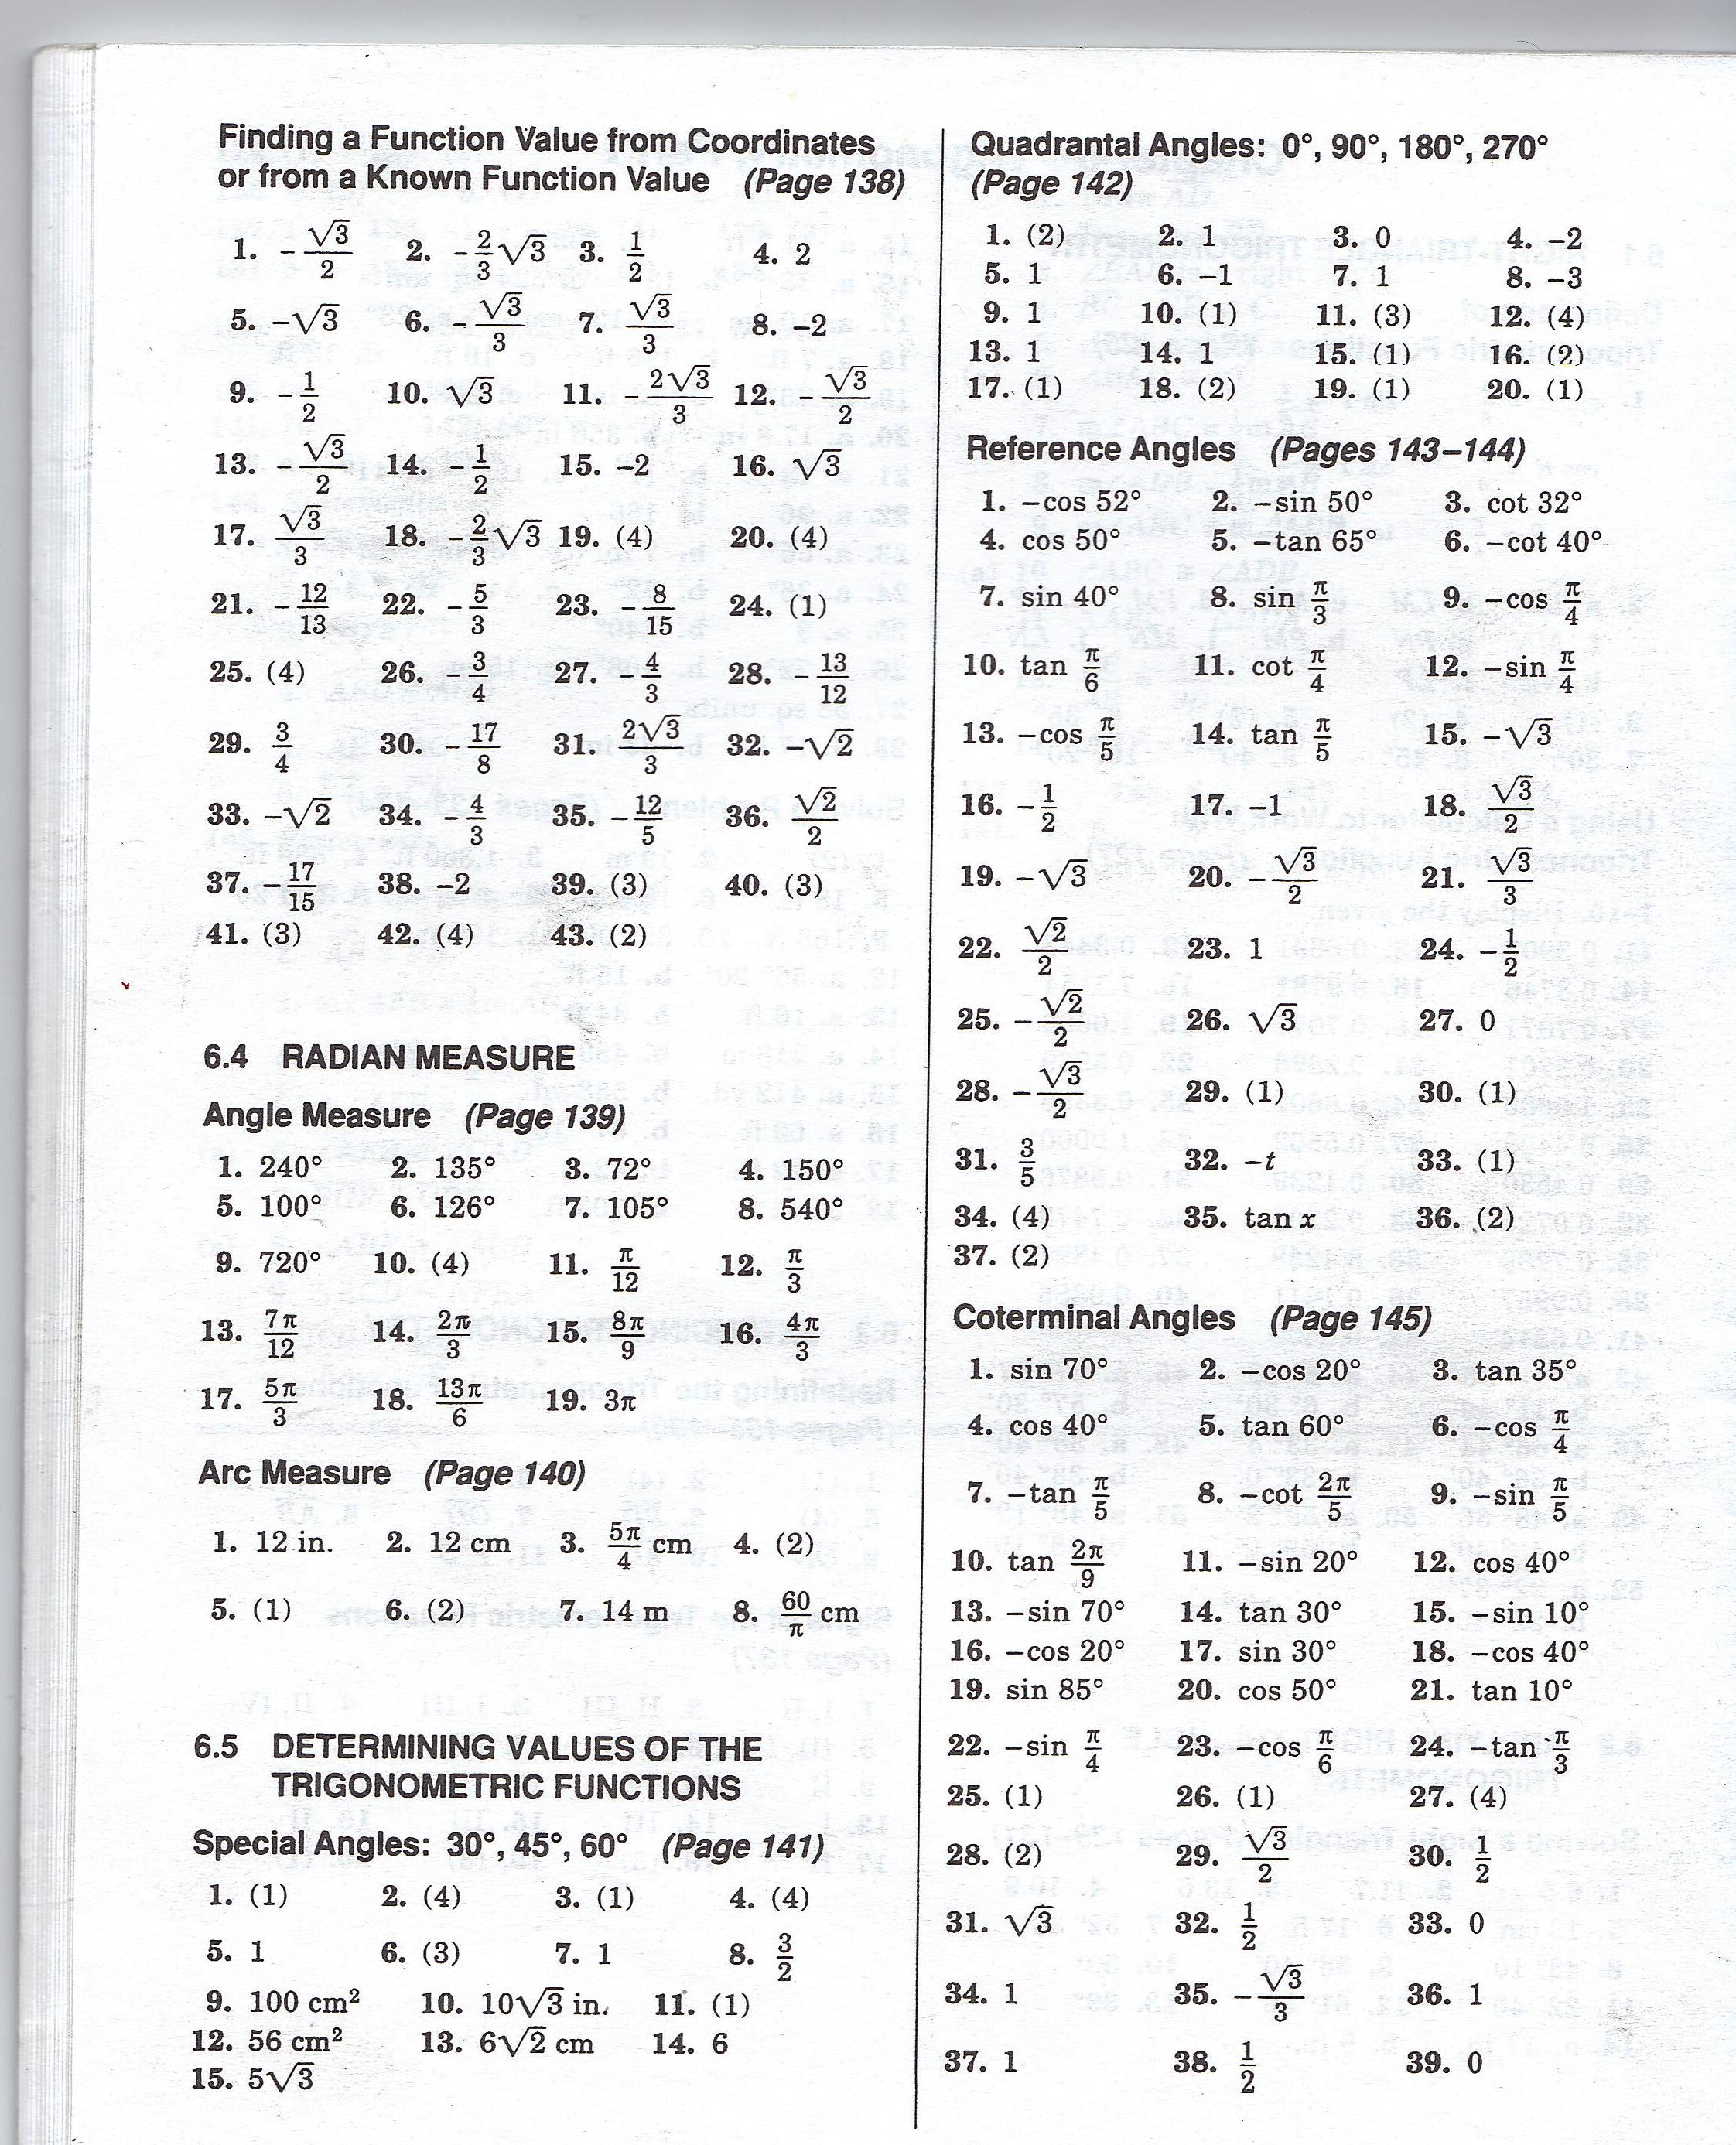 Algebra II / Trig Worksheet Answer Keys - MHSHS Wiki